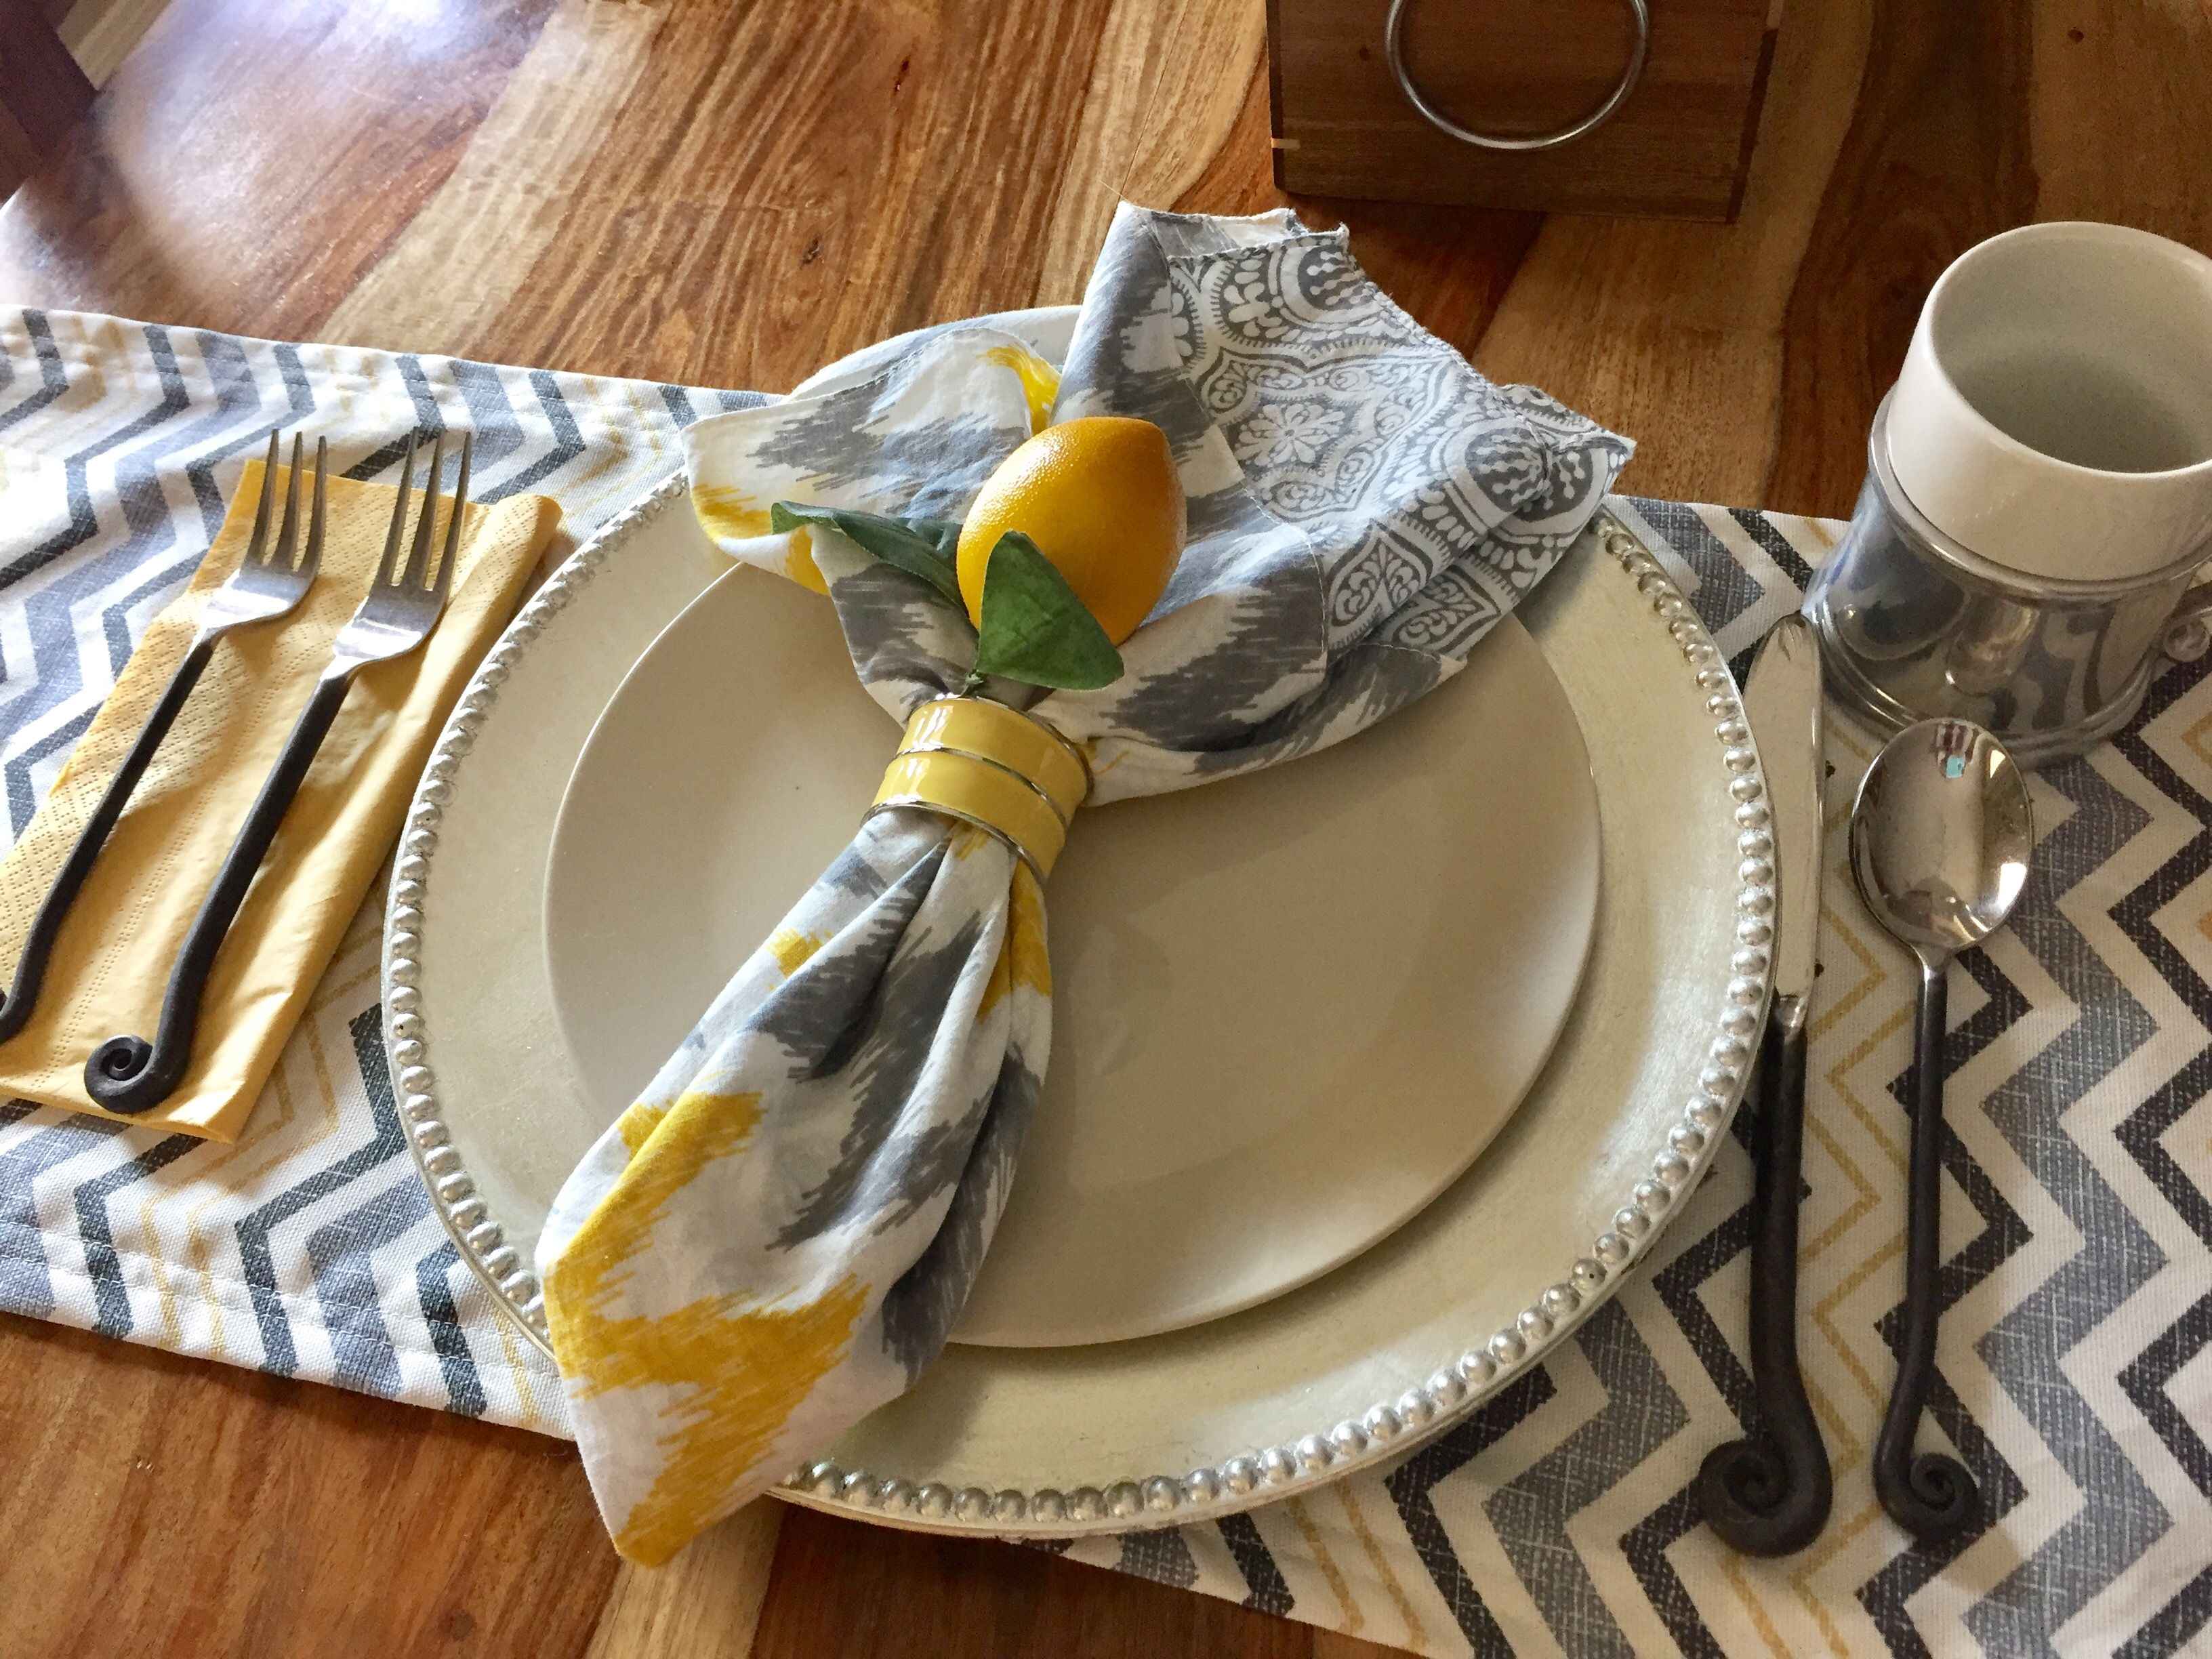 Walmart Runner Fabric Napkins Neckerchiefs Hobby Lobby Napkin Rings Pottery Barn Wilton Armetale Mug Treb Wilton Armetale Tablescapes Bed Bath And Beyond